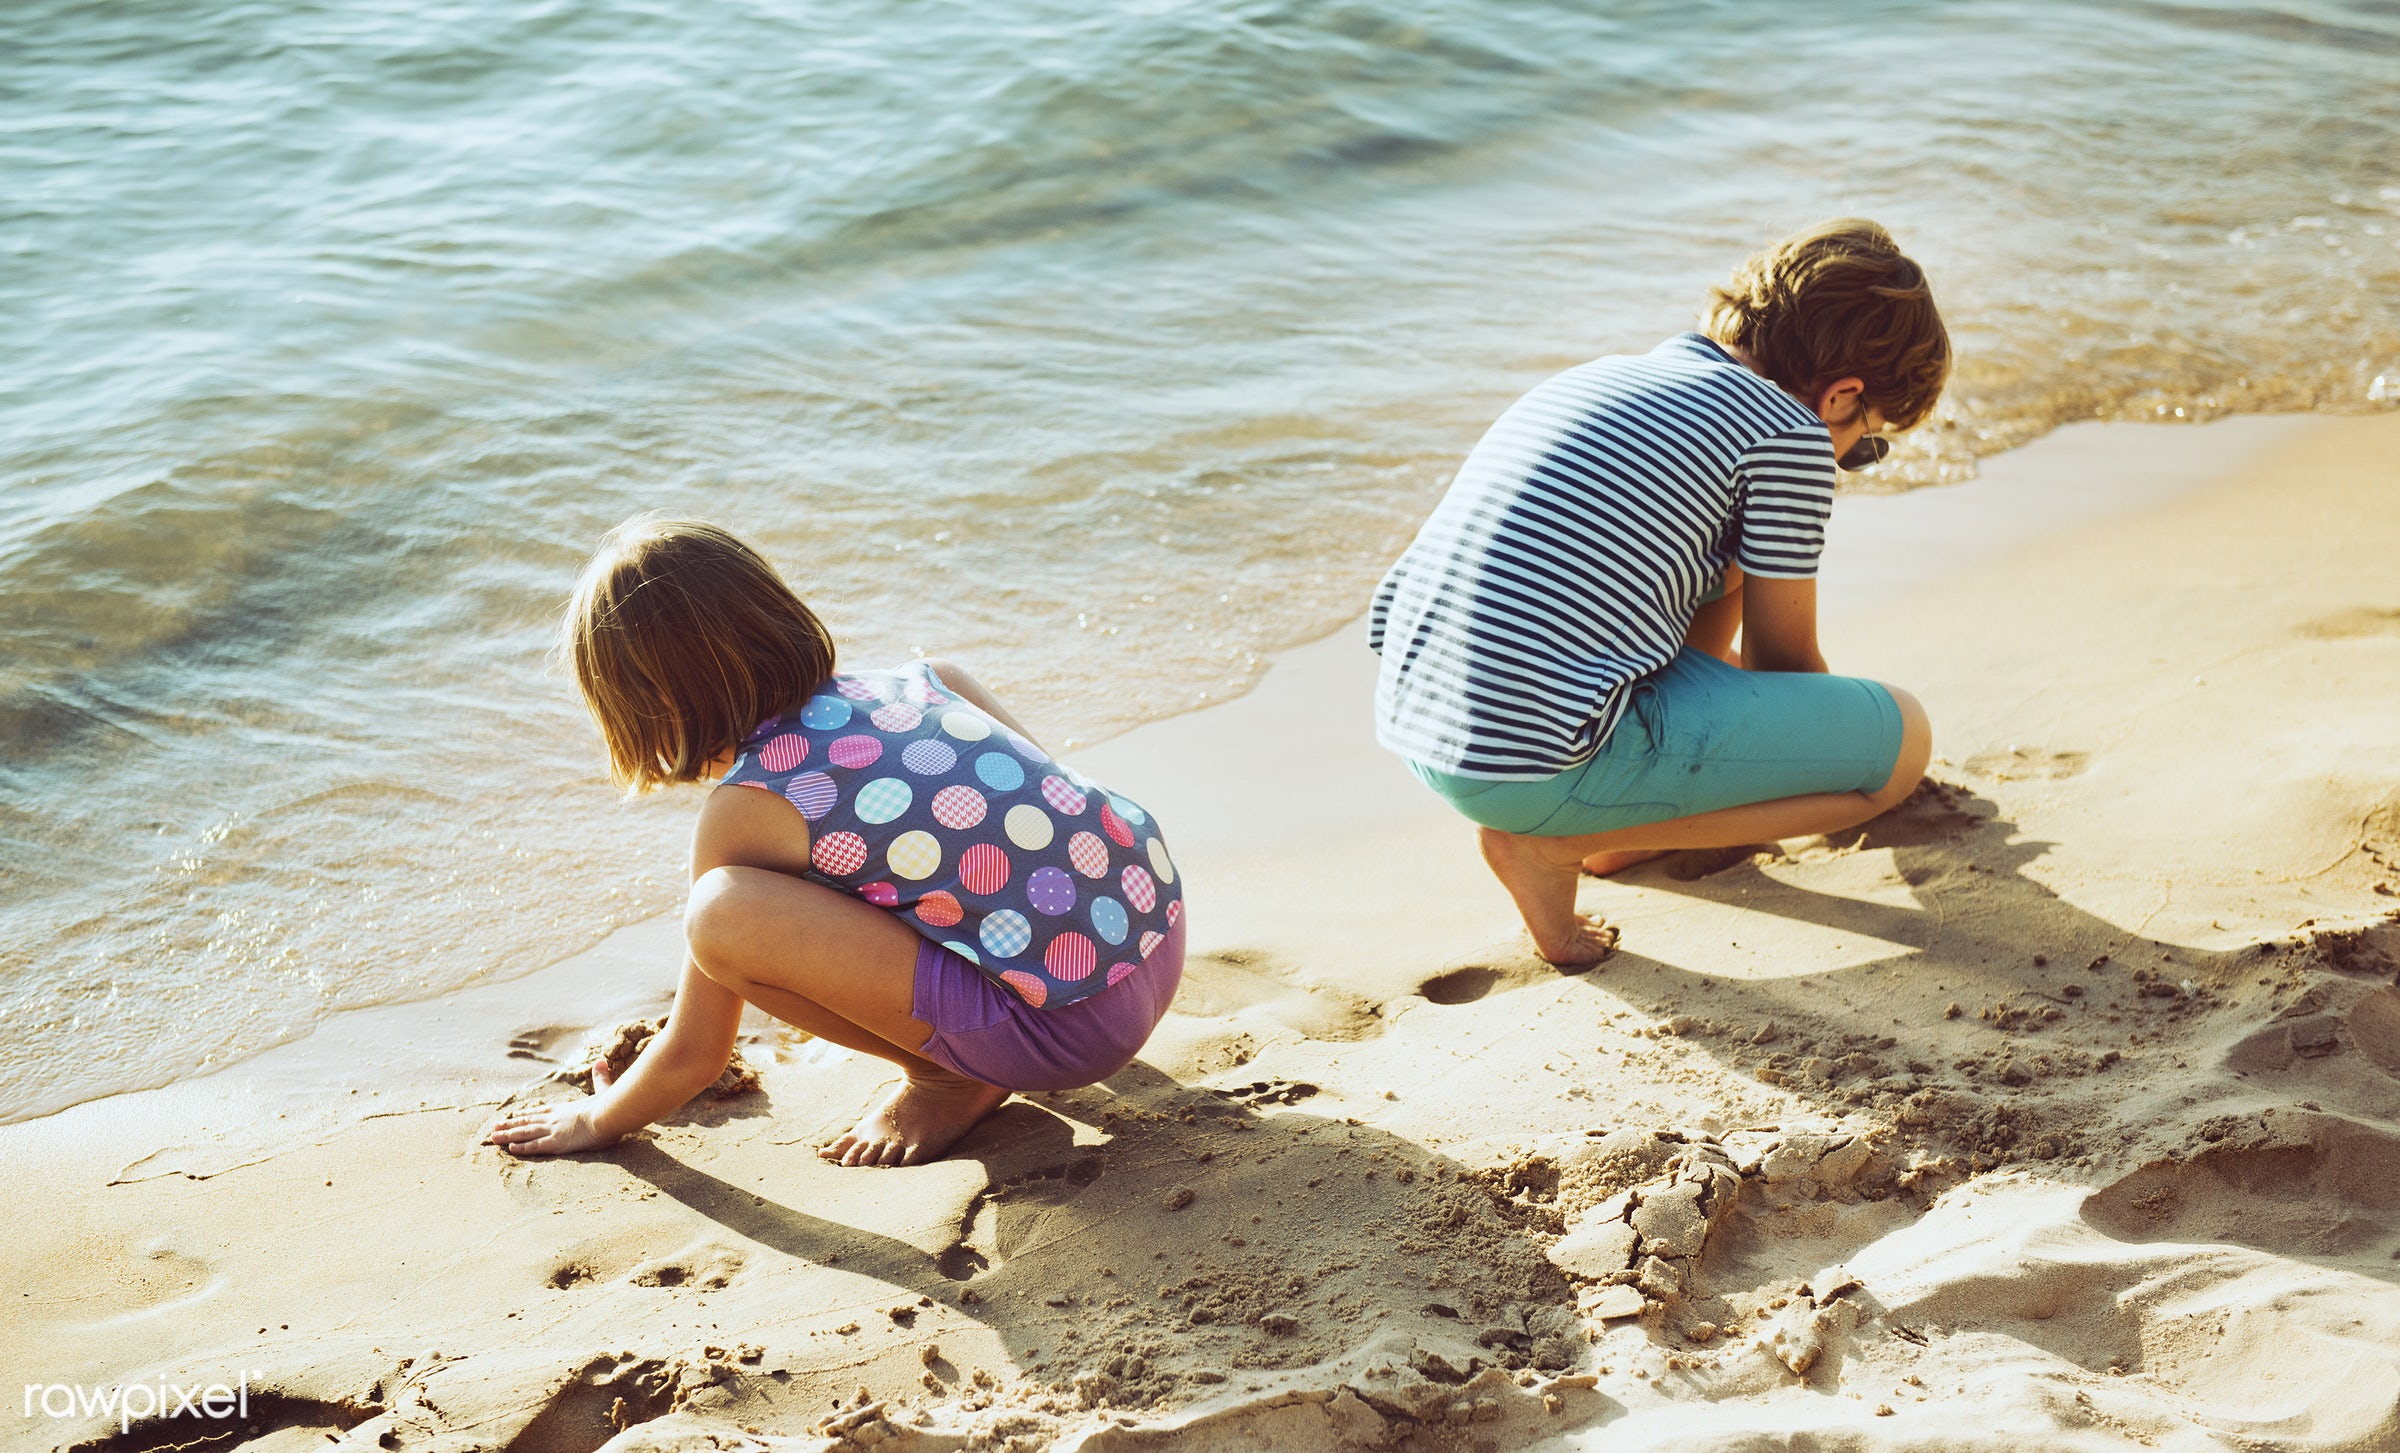 beach, sand, bay, boy, children, crouch, fun, girl, holiday, kids, nature, playing, sea, shore, summer, vacation, young